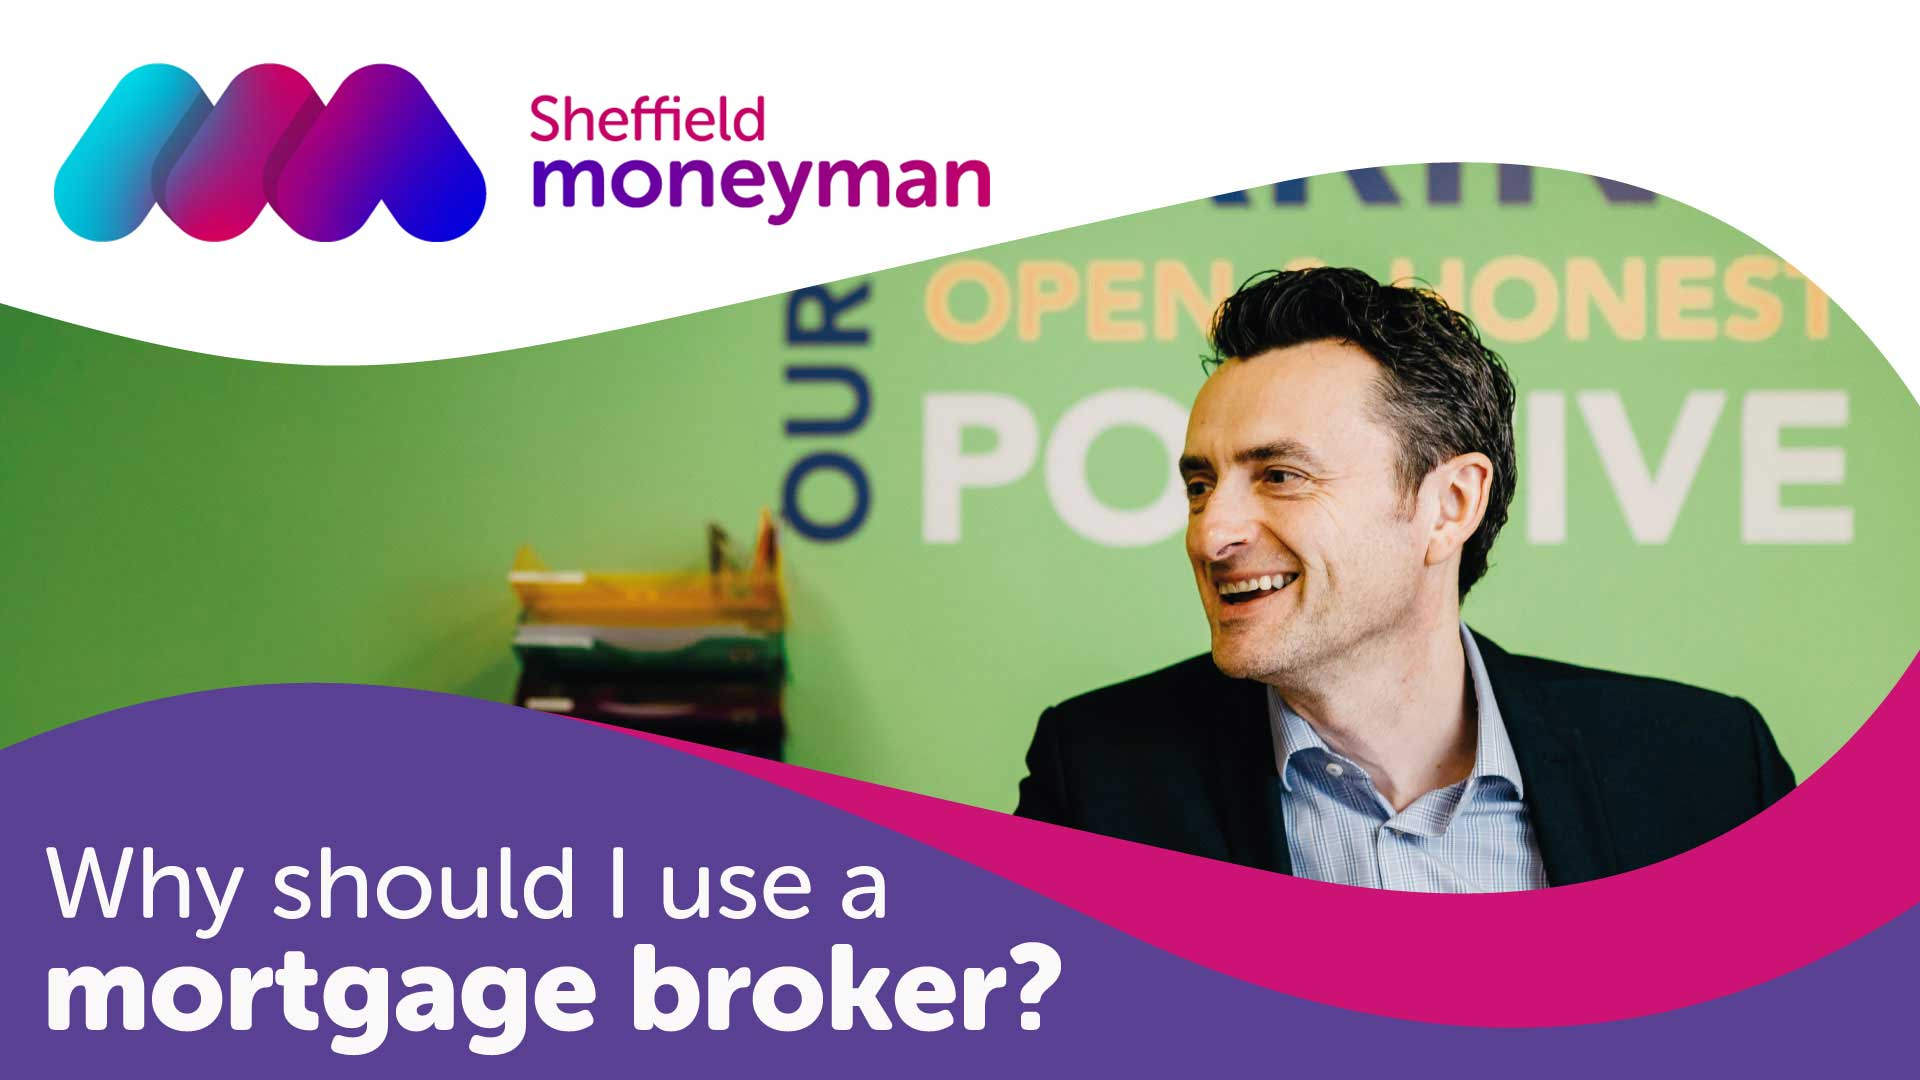 Why Should I use a Mortgage Broker in Sheffield